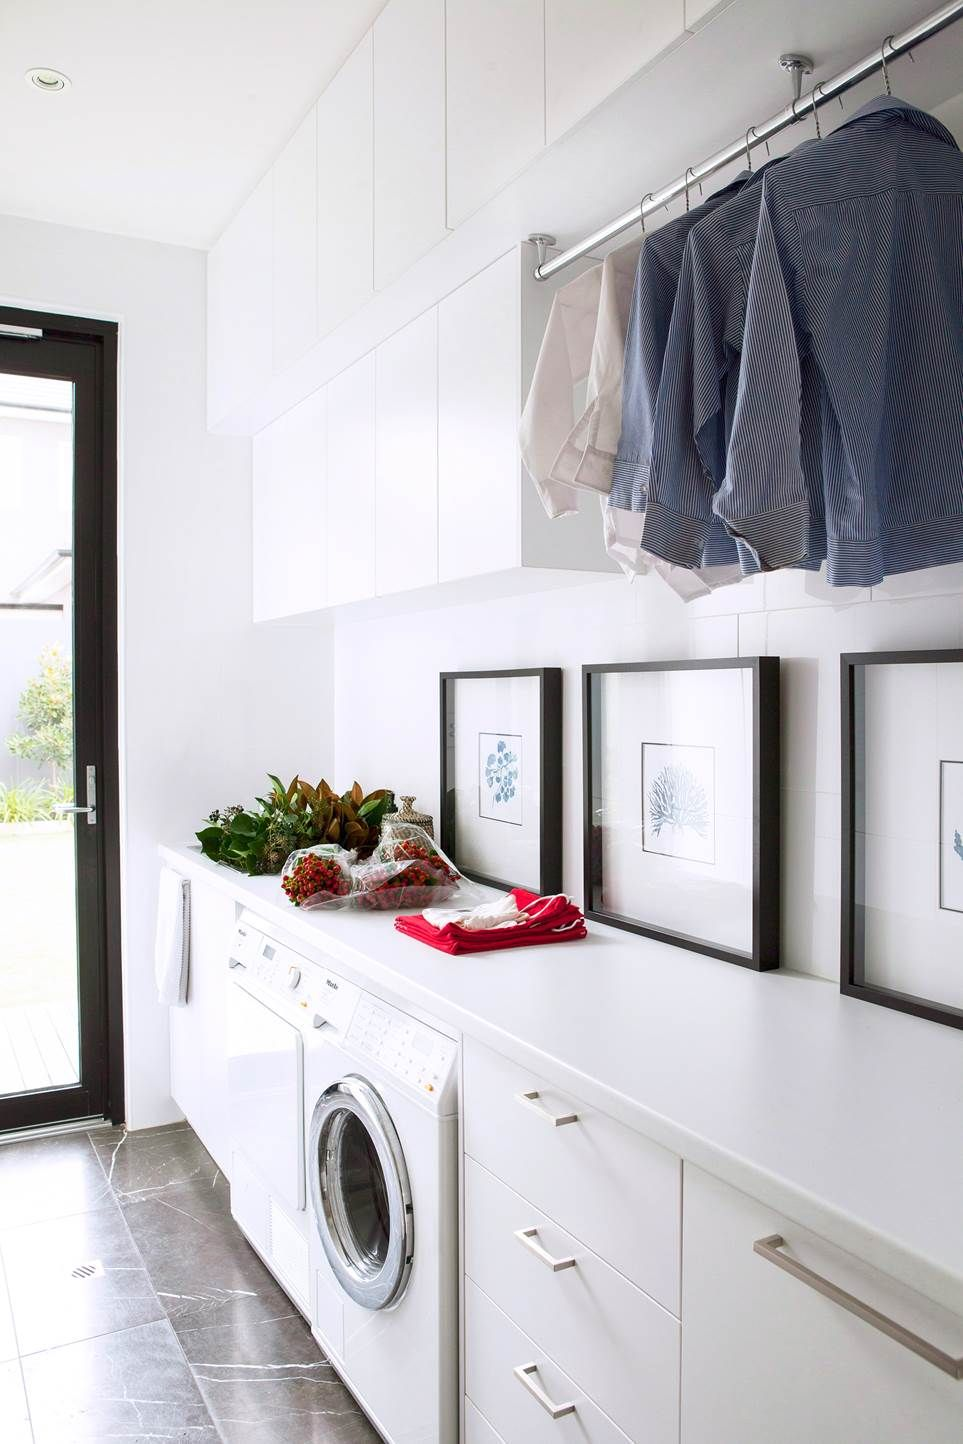 Pin by Karen Smith on Laundry ideas Laundry room design